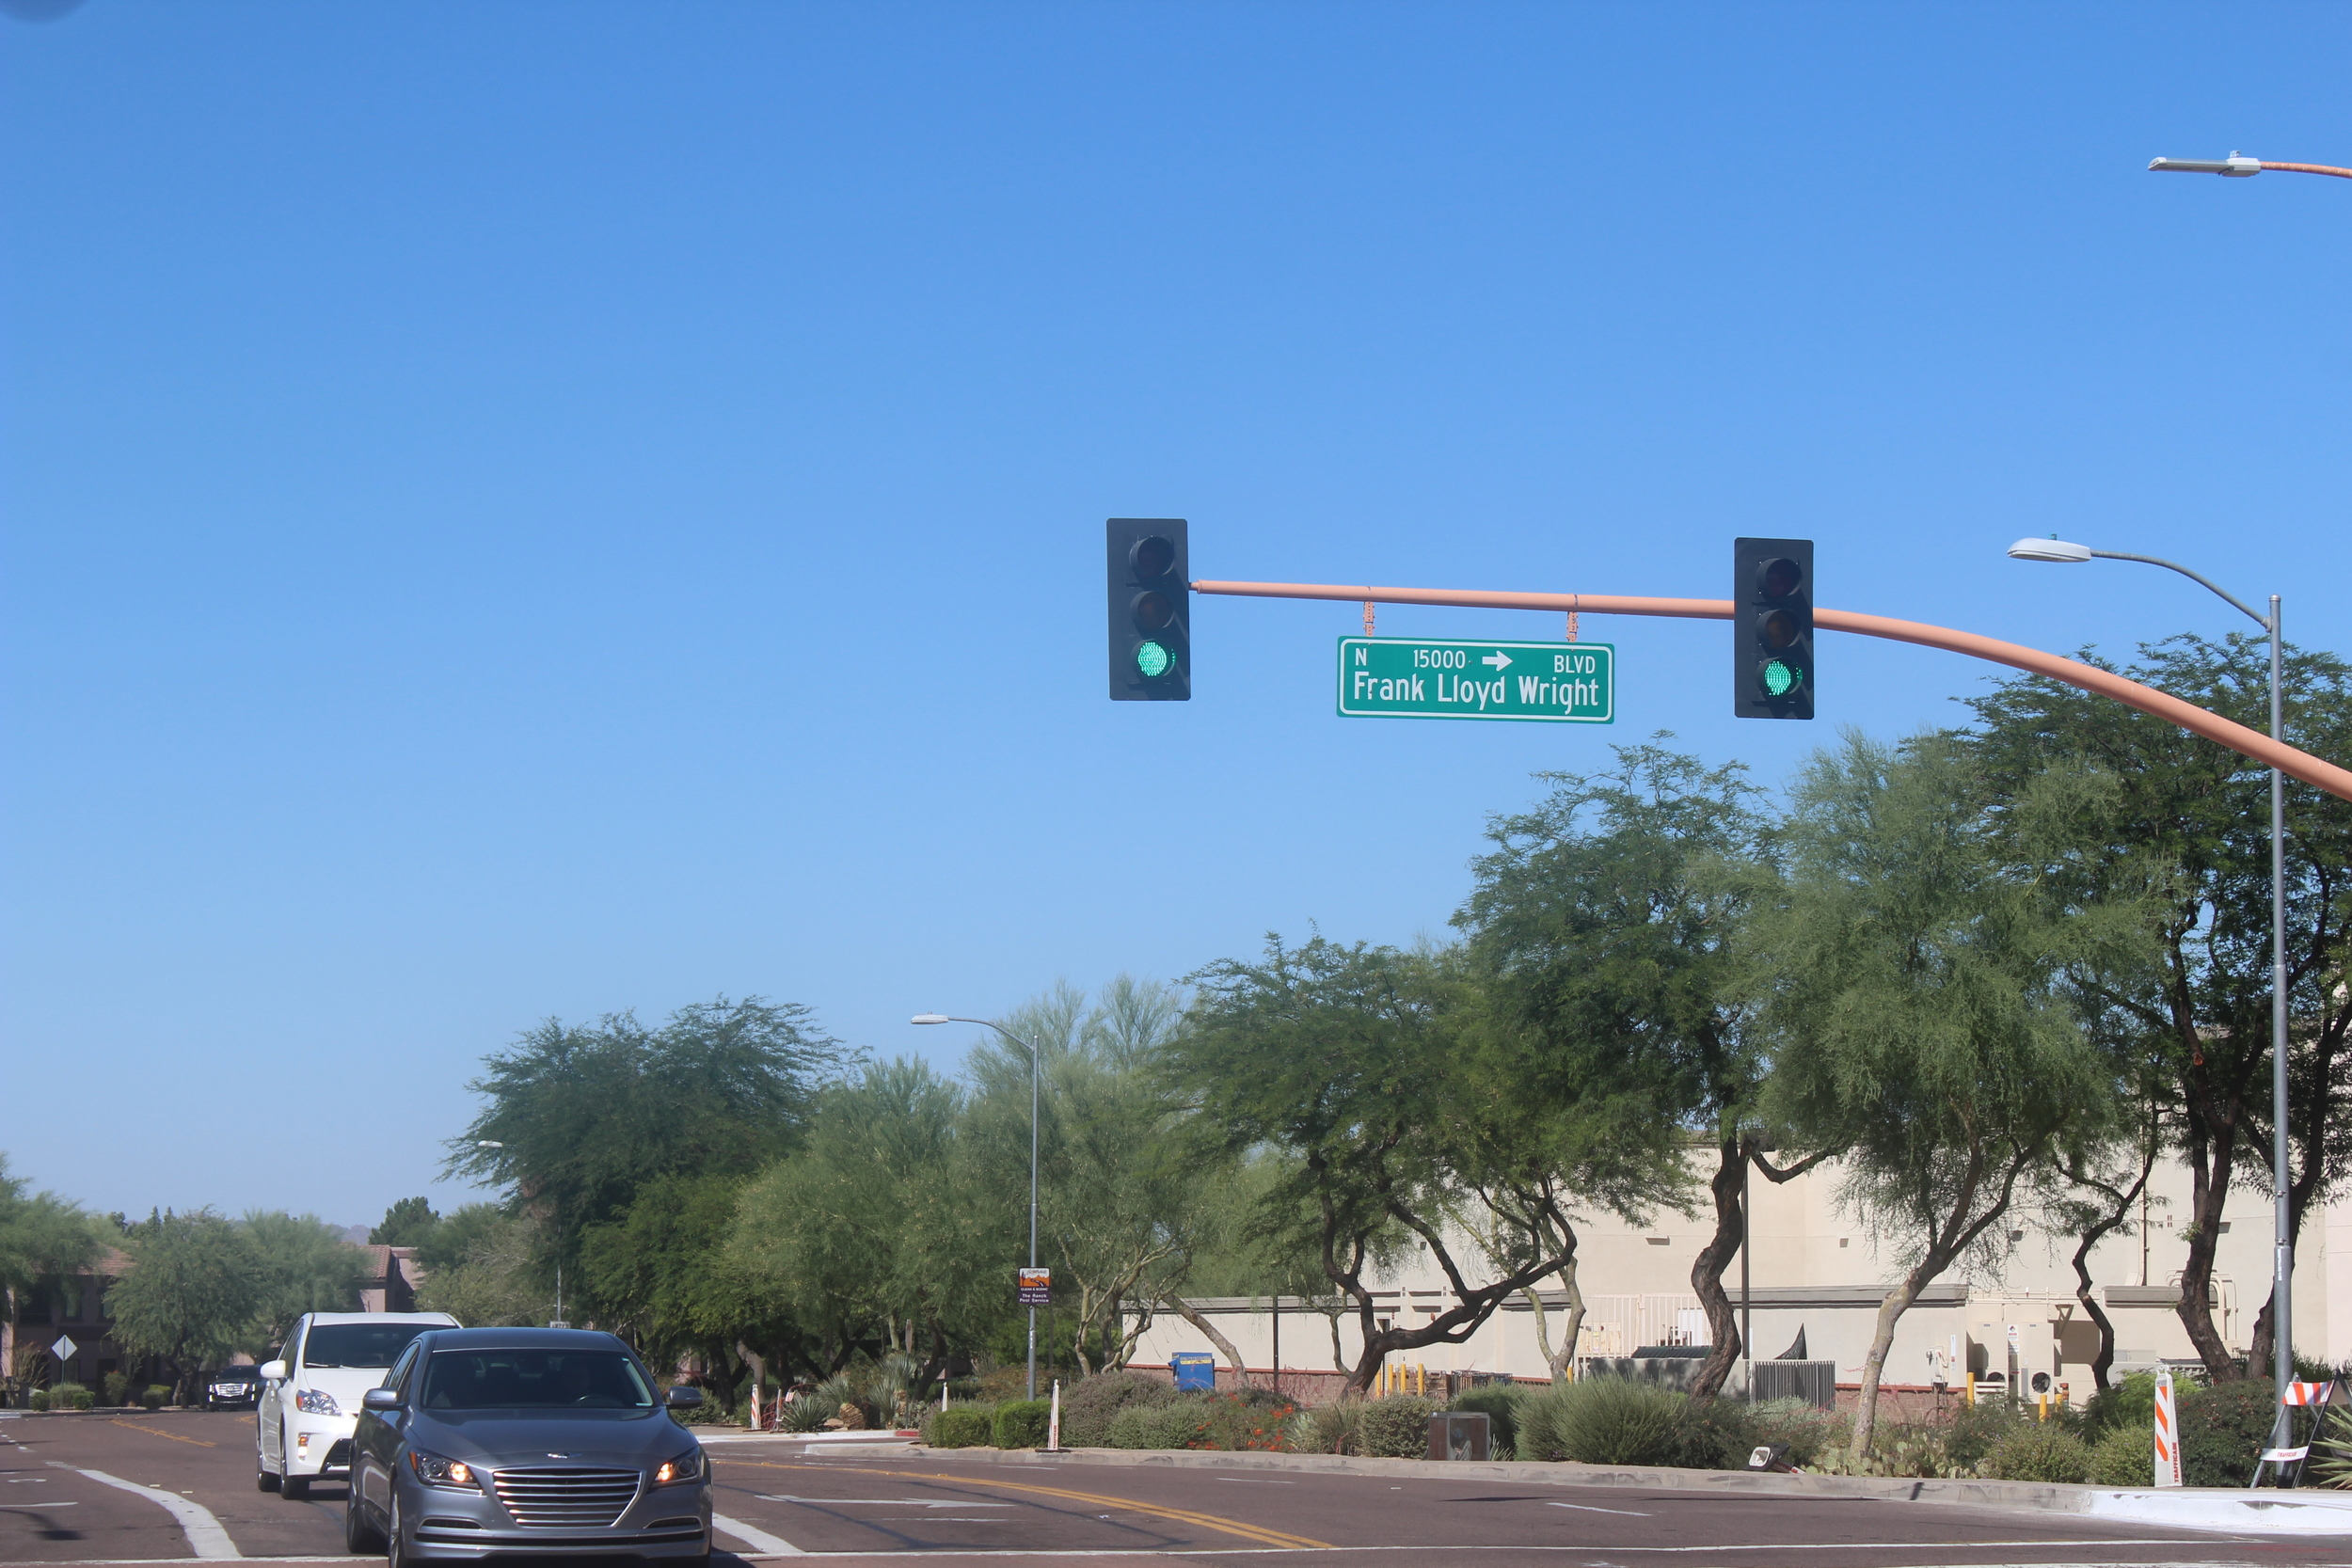 Frank Lloyd Wright Blvd- Scottsdale, Arizona